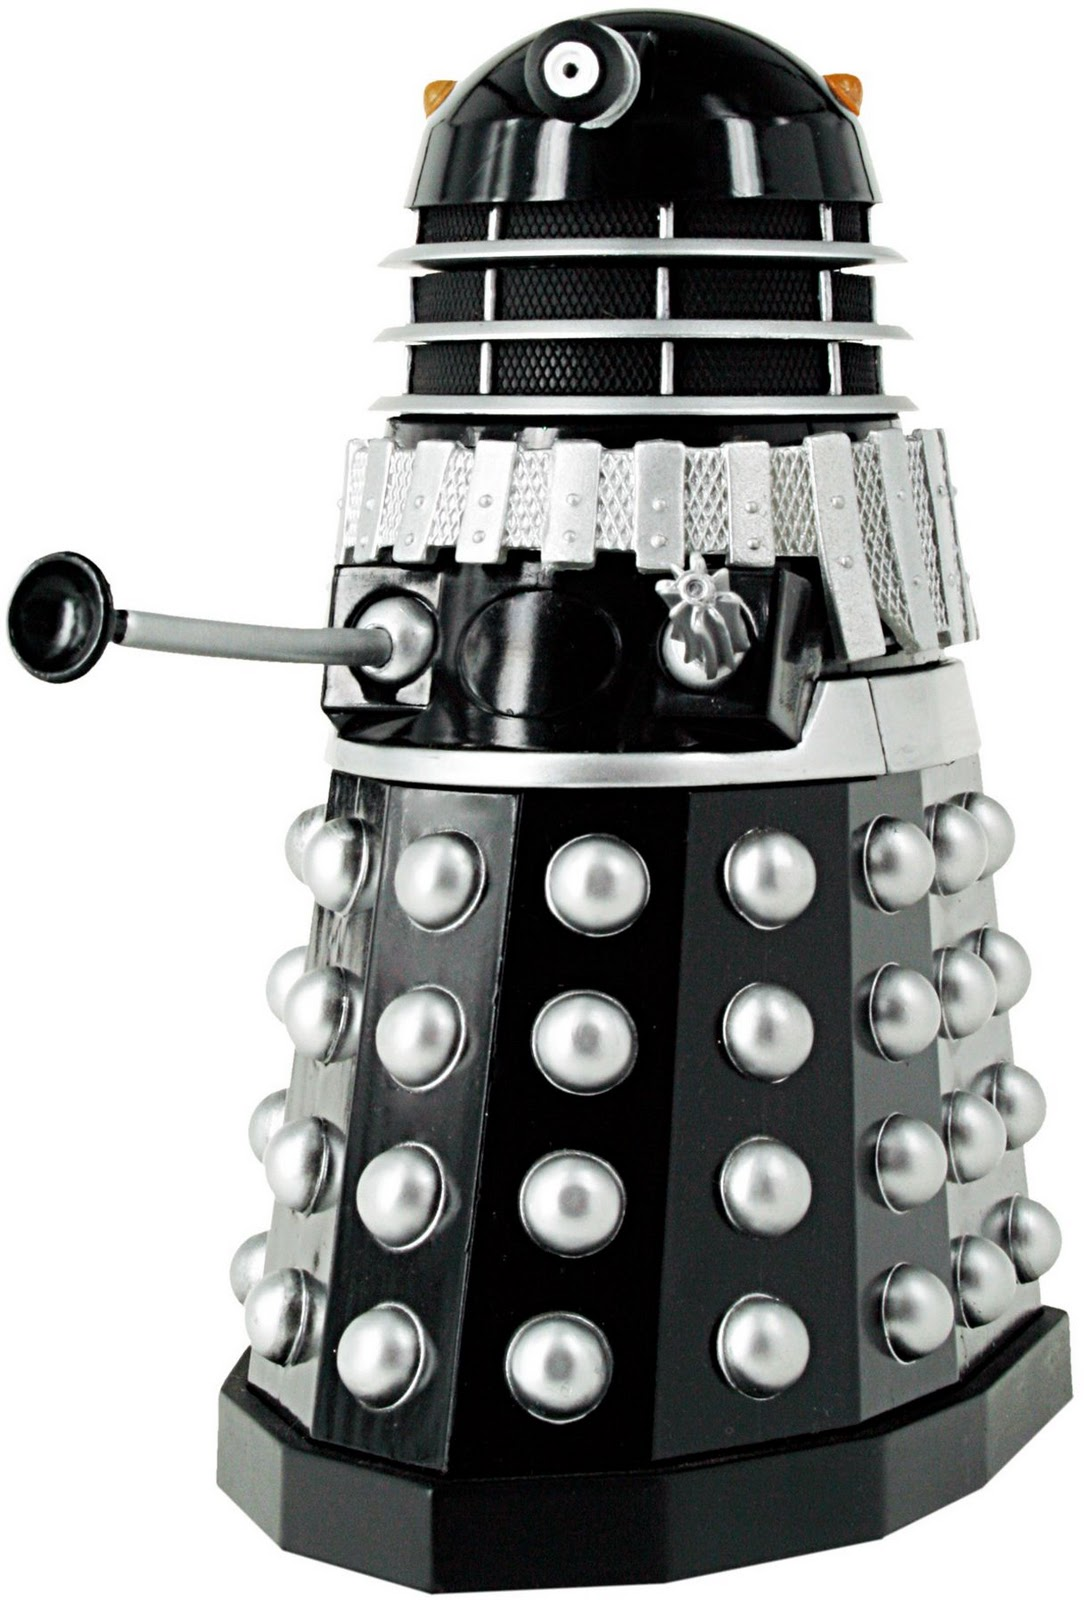 Can The Daleks Time Travel